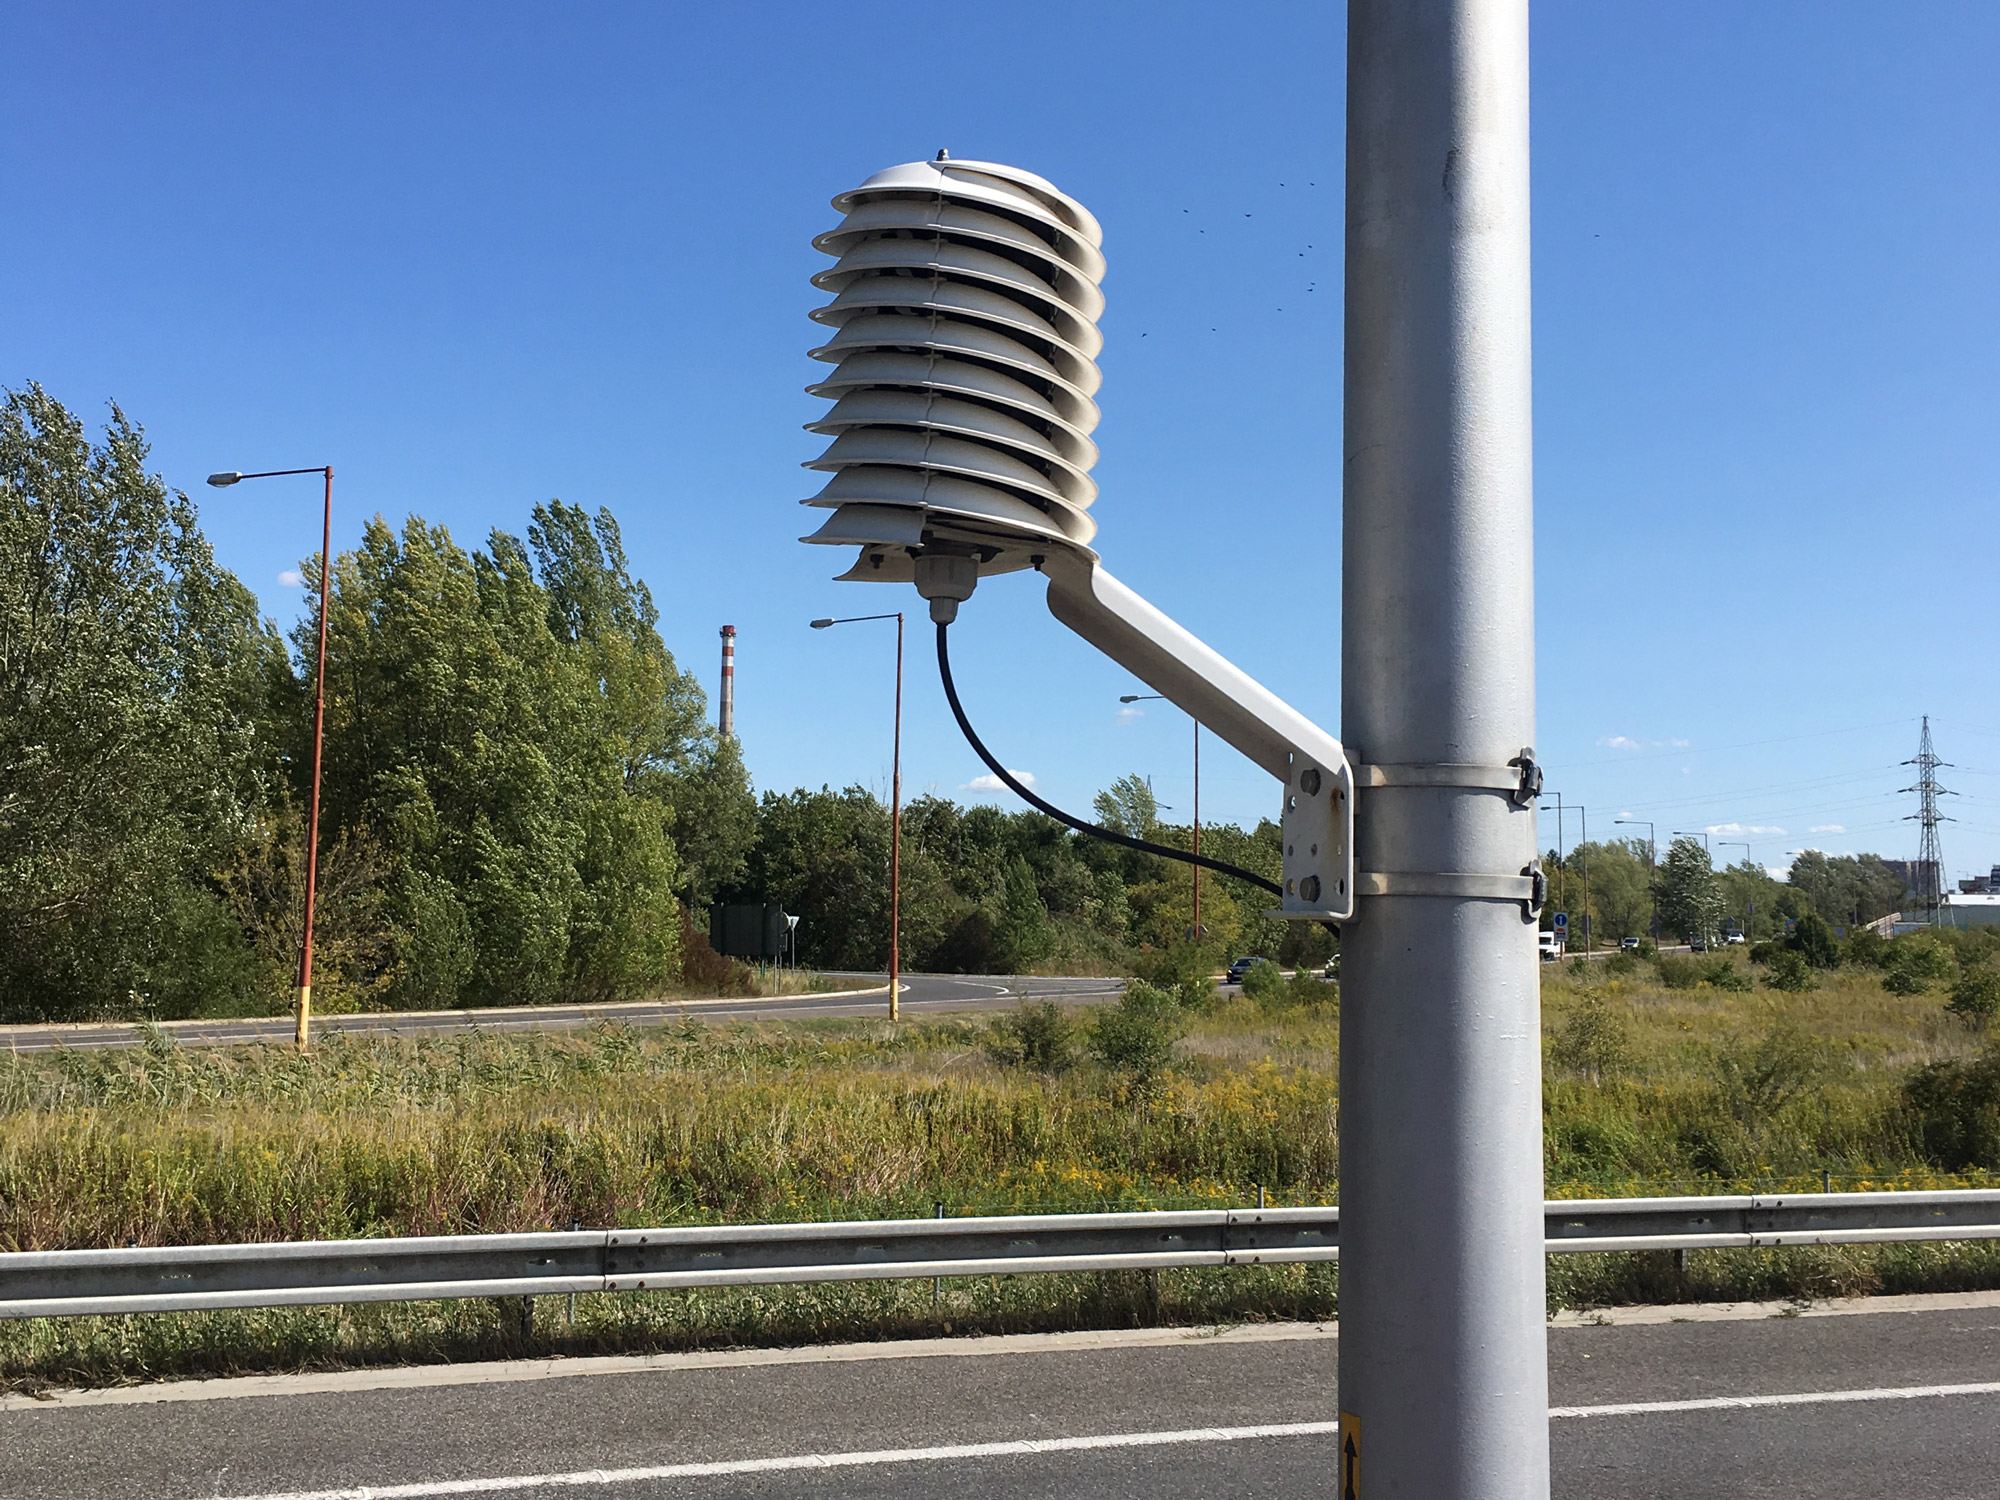 highway-weather-station-air-temperature-sensor.jpg